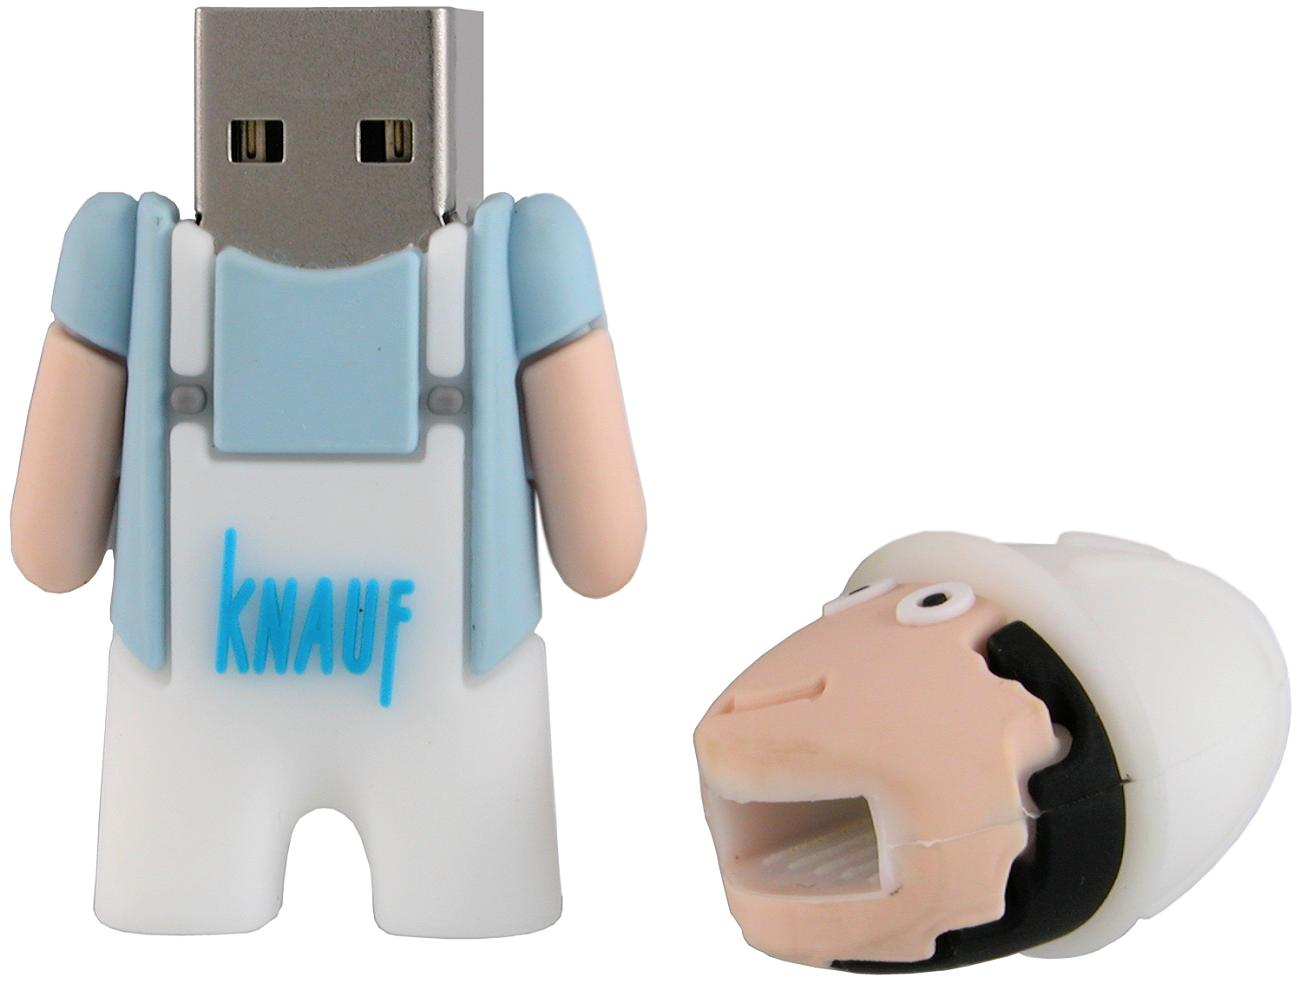 Construction Worker Usb Stick Knauf Cd257